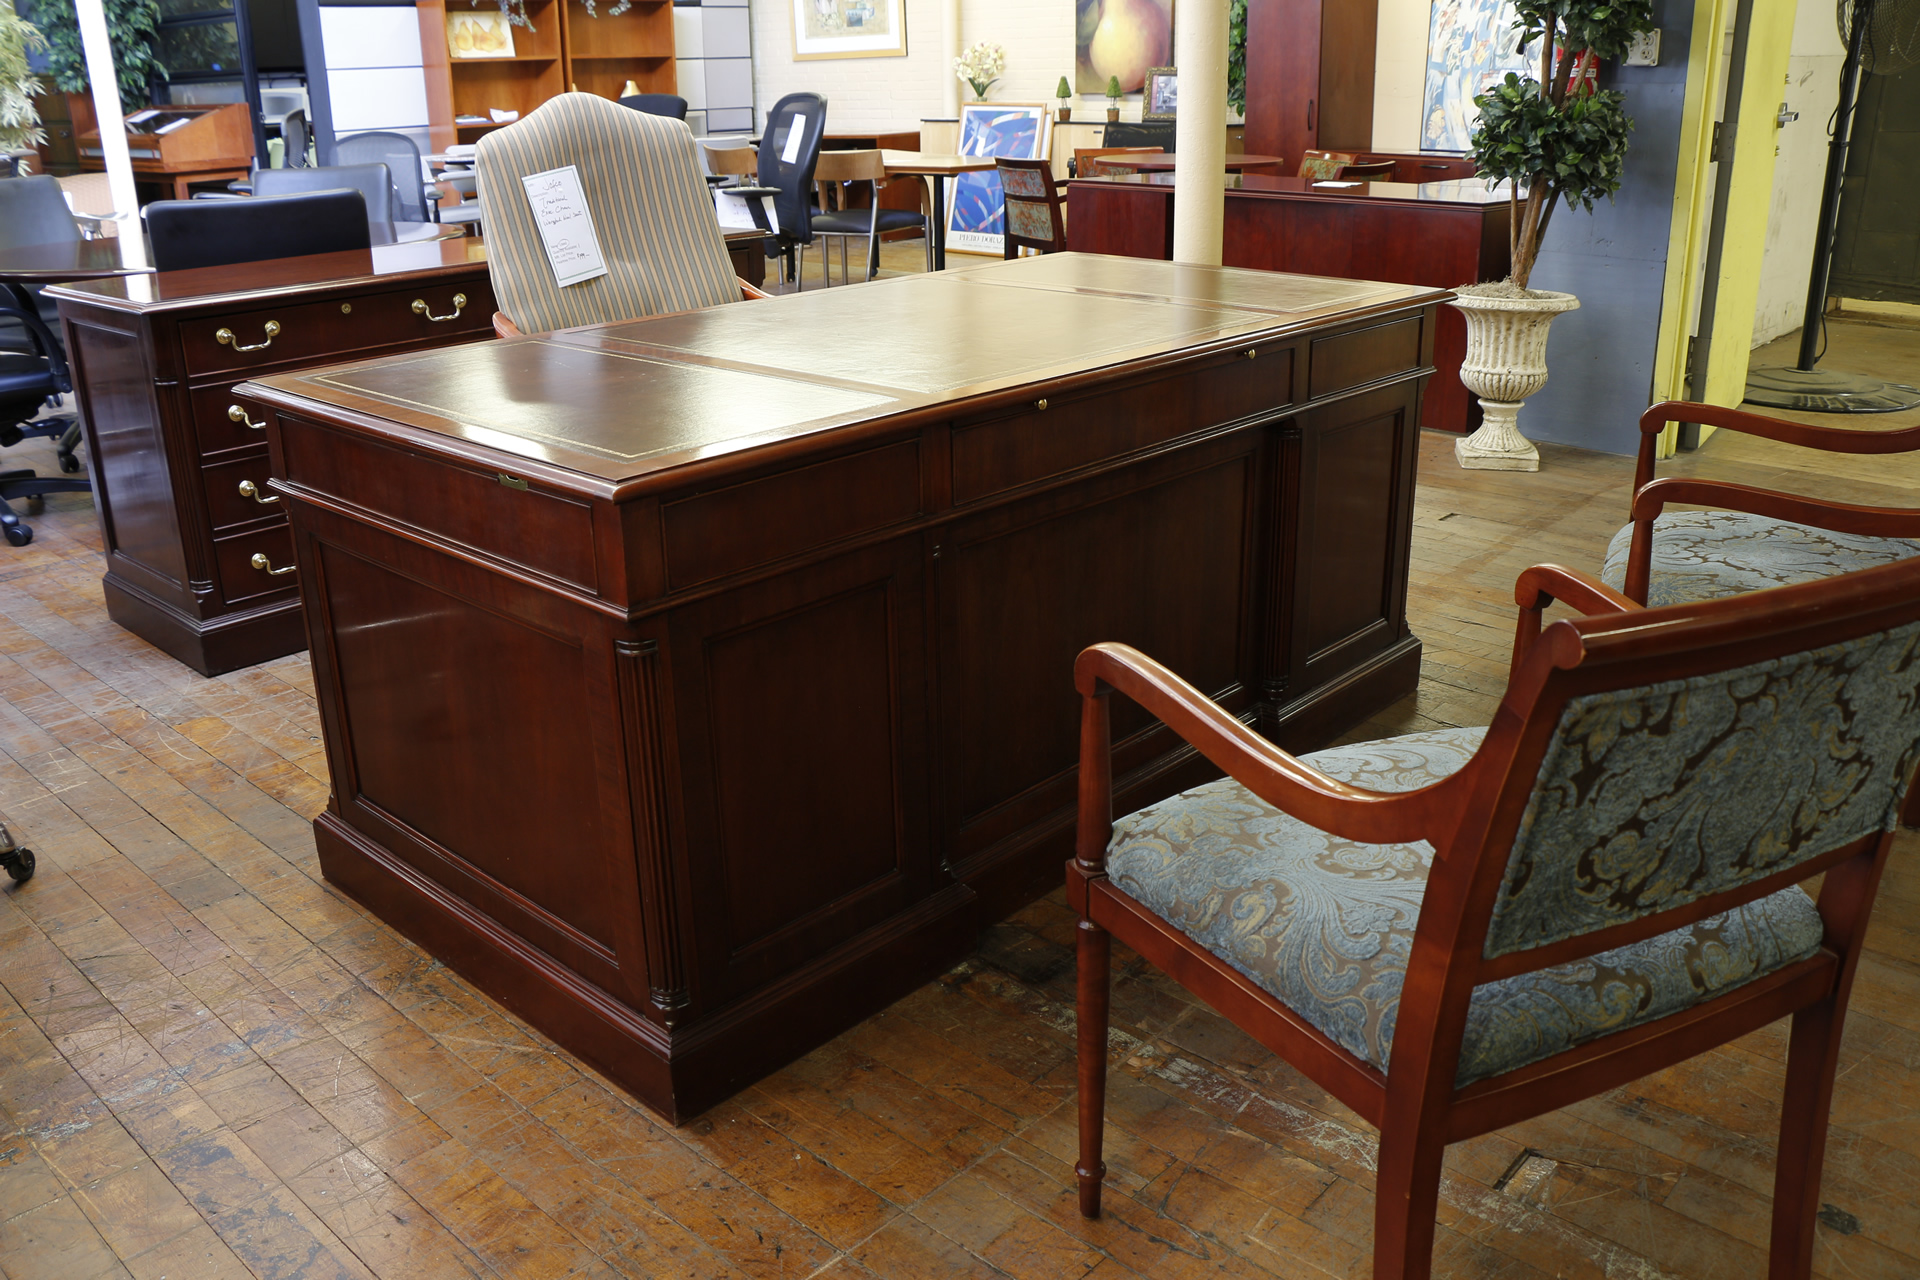 peartreeofficefurniture_peartreeofficefurniture_mg_4226.jpg